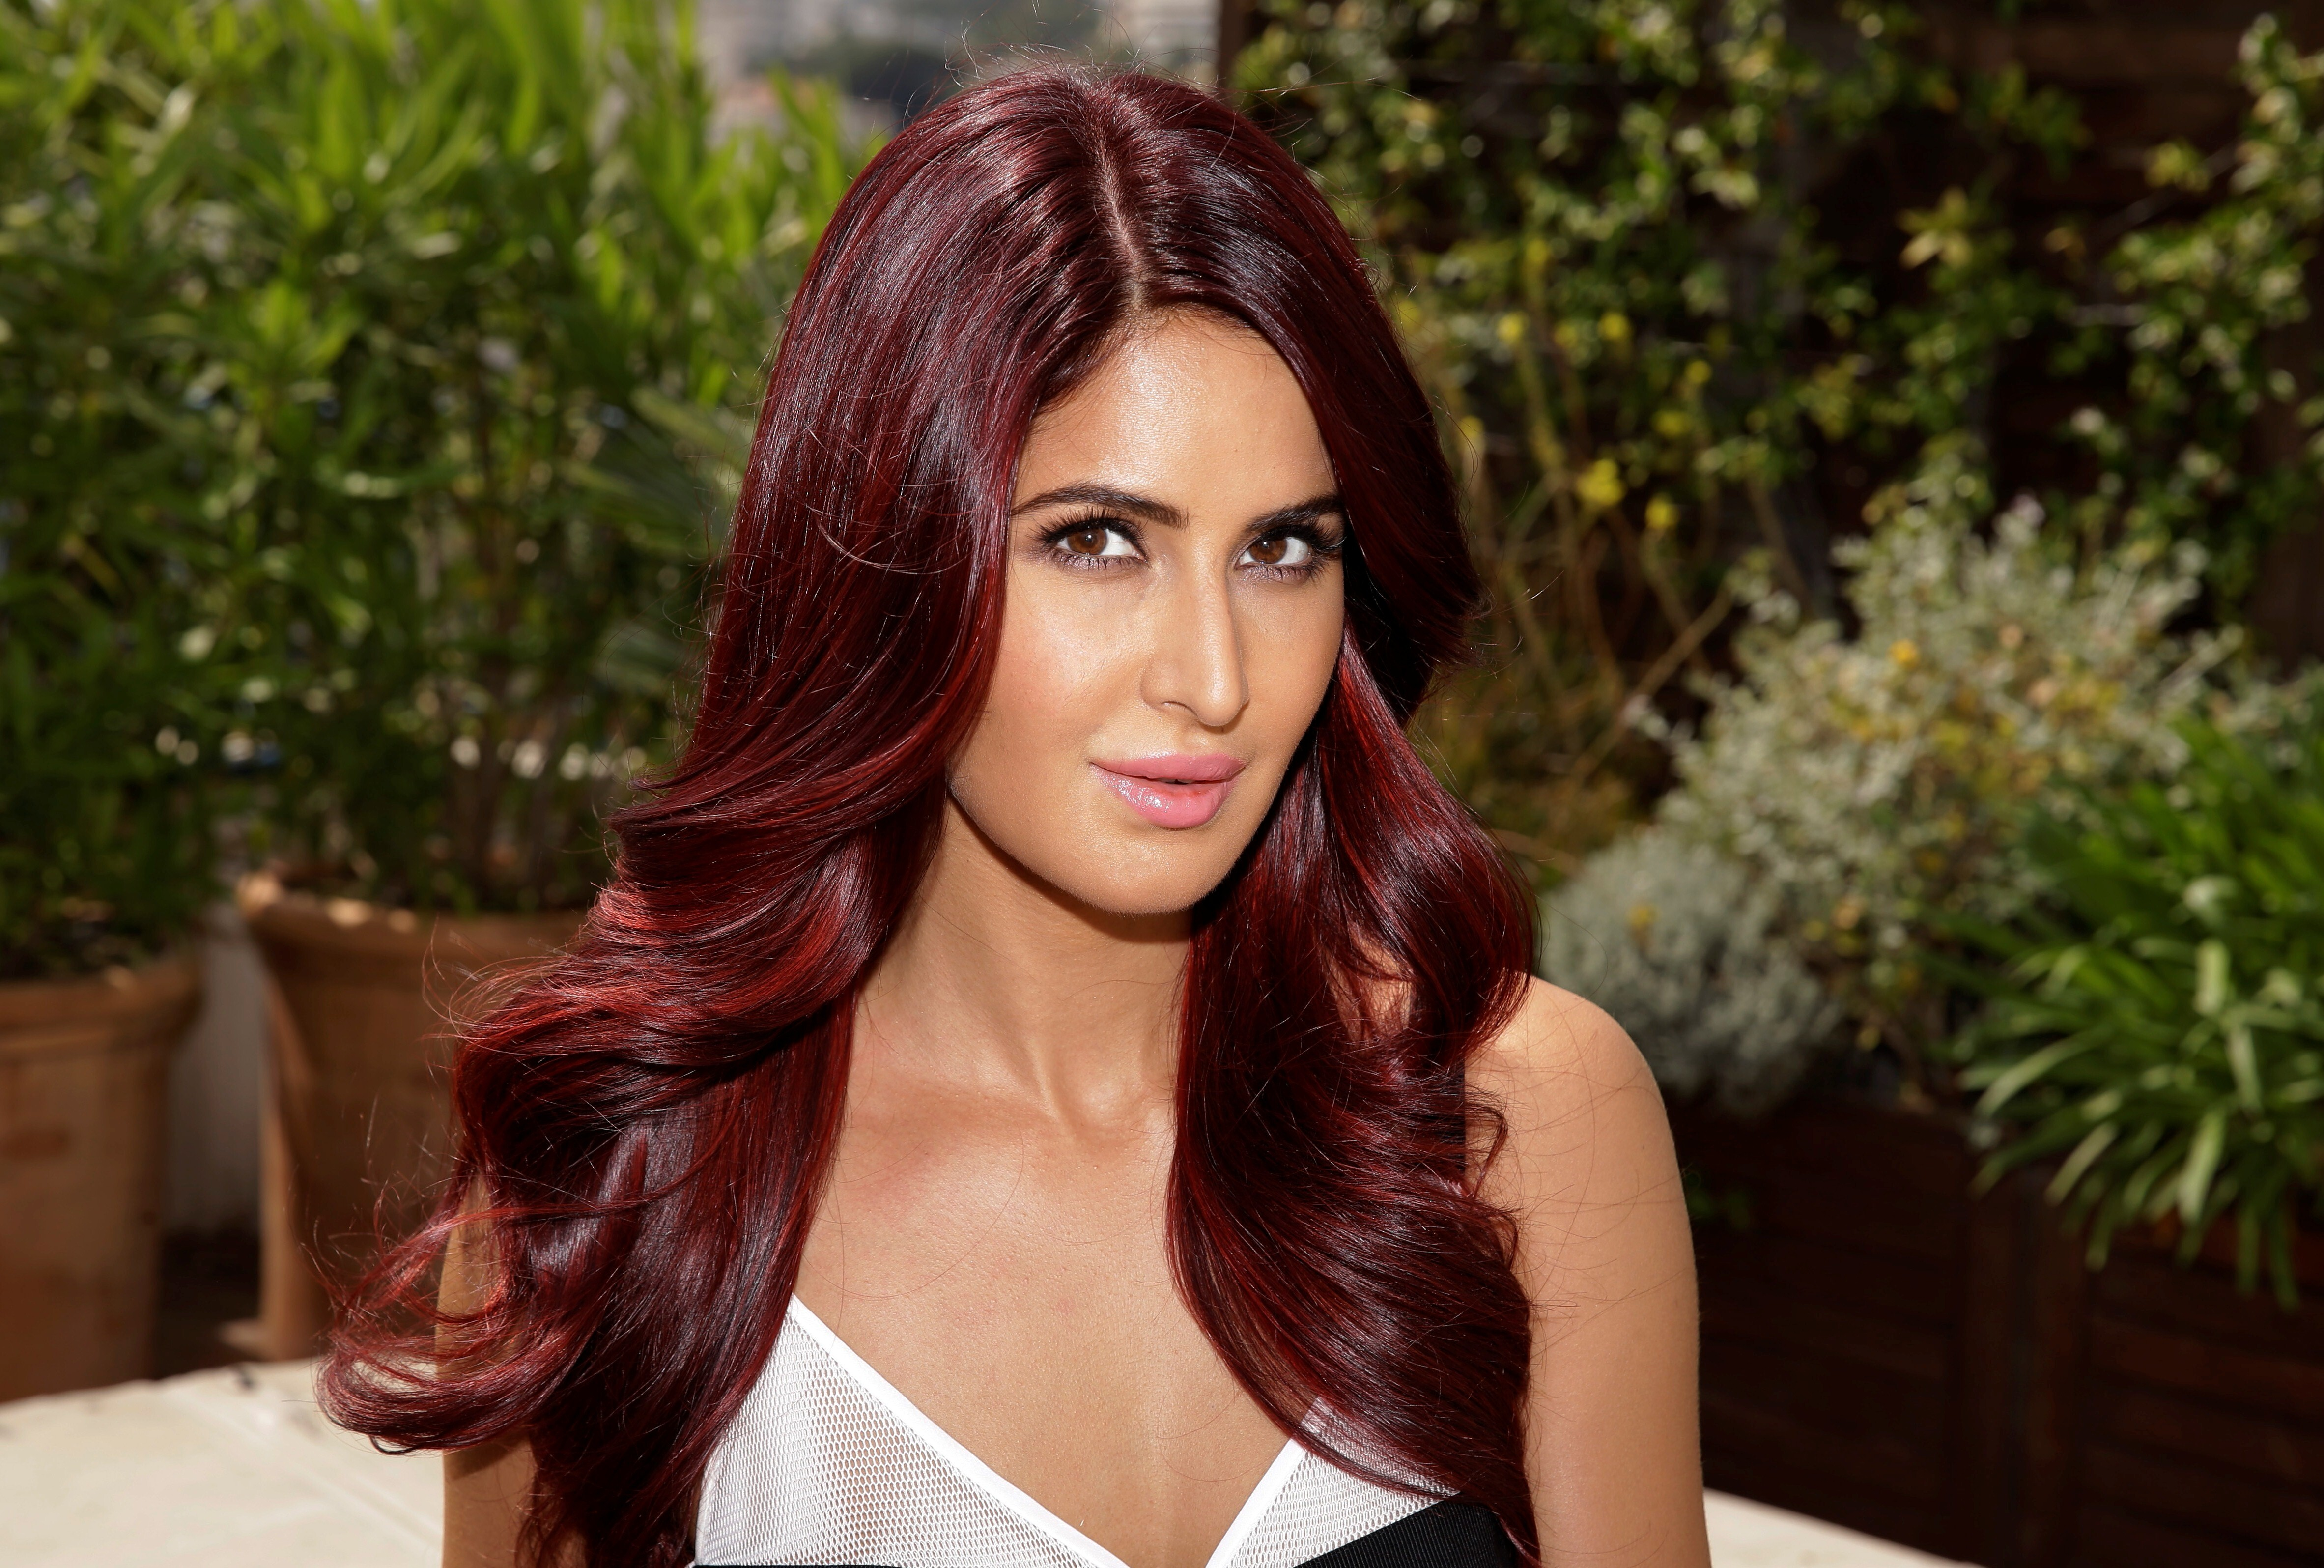 hd wallpaper of katrina kaif bollywood film actress | hd wallpapers